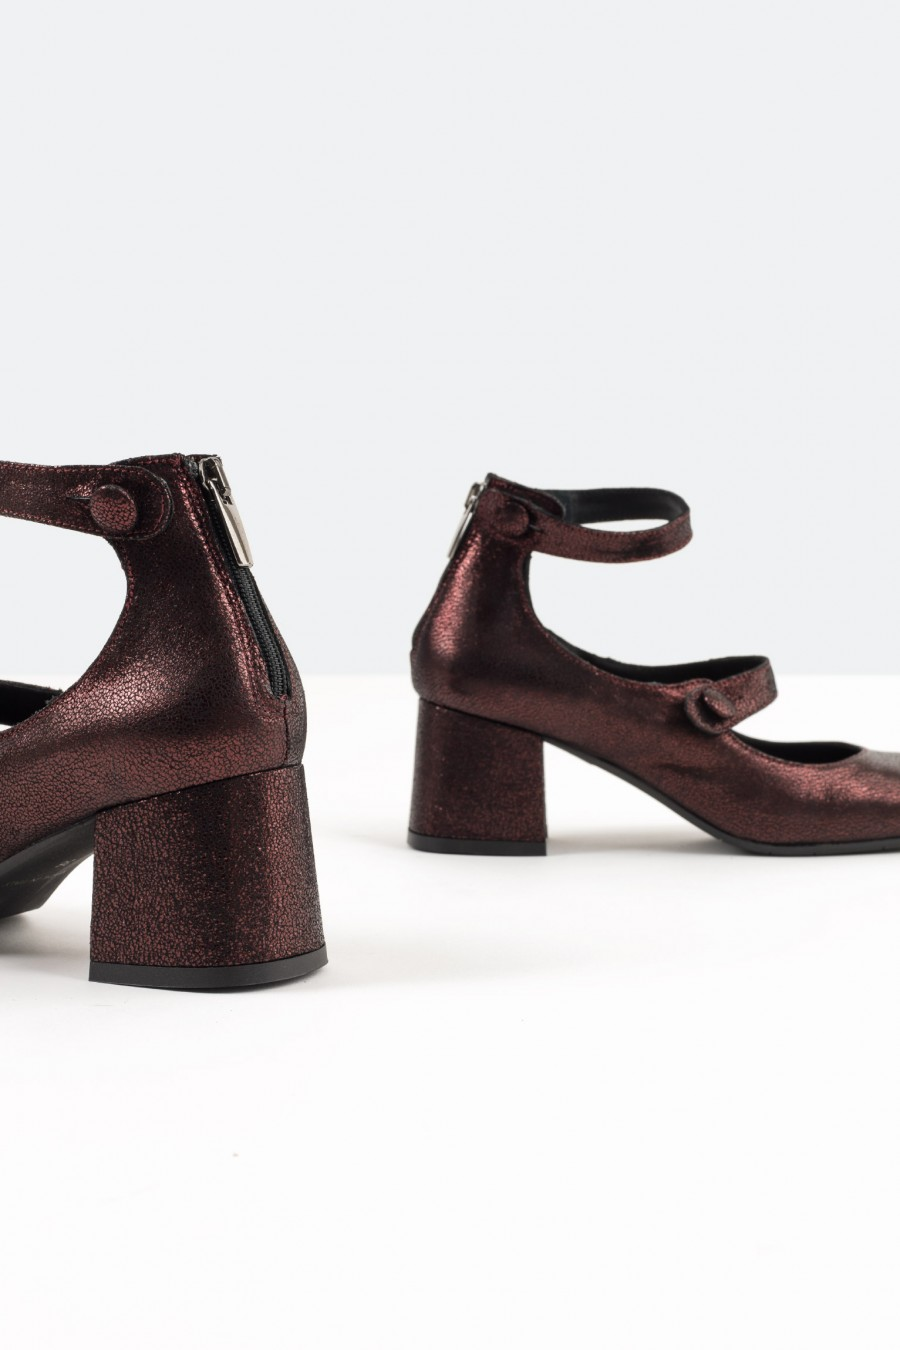 Lazzari metallic burgundy leather Mary Jane shoes